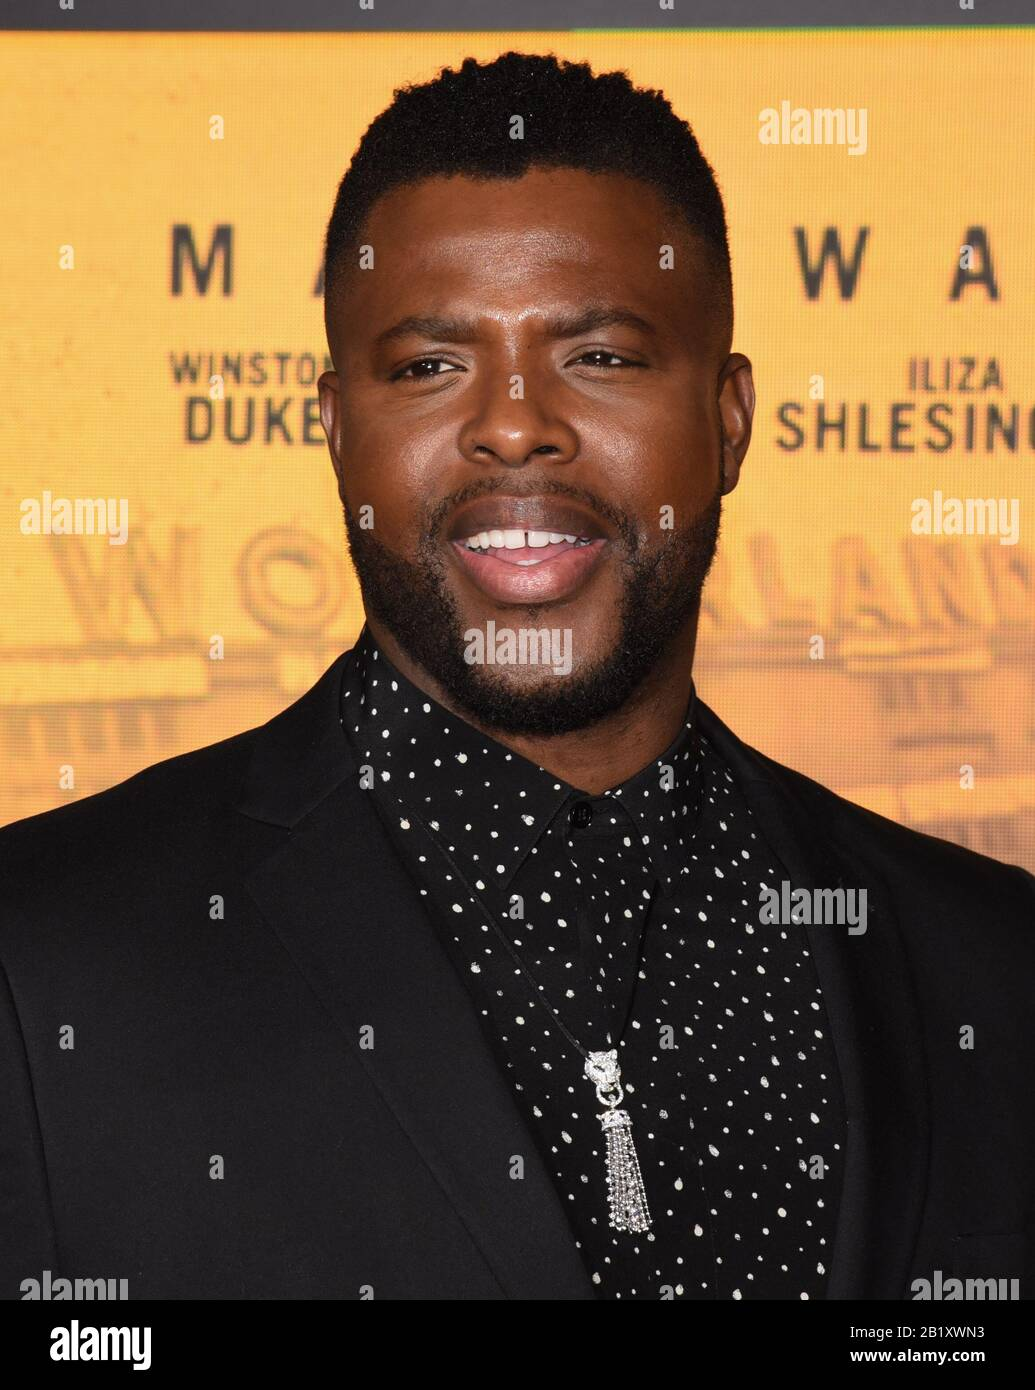 February 27 2020 Westwood Ca Usa Winston Duke Attends Premiere Of Netflix S Spenser Confidential At The Regency Village Theatre Credit Image C Billy Bennight Zuma Wire Stock Photo Alamy